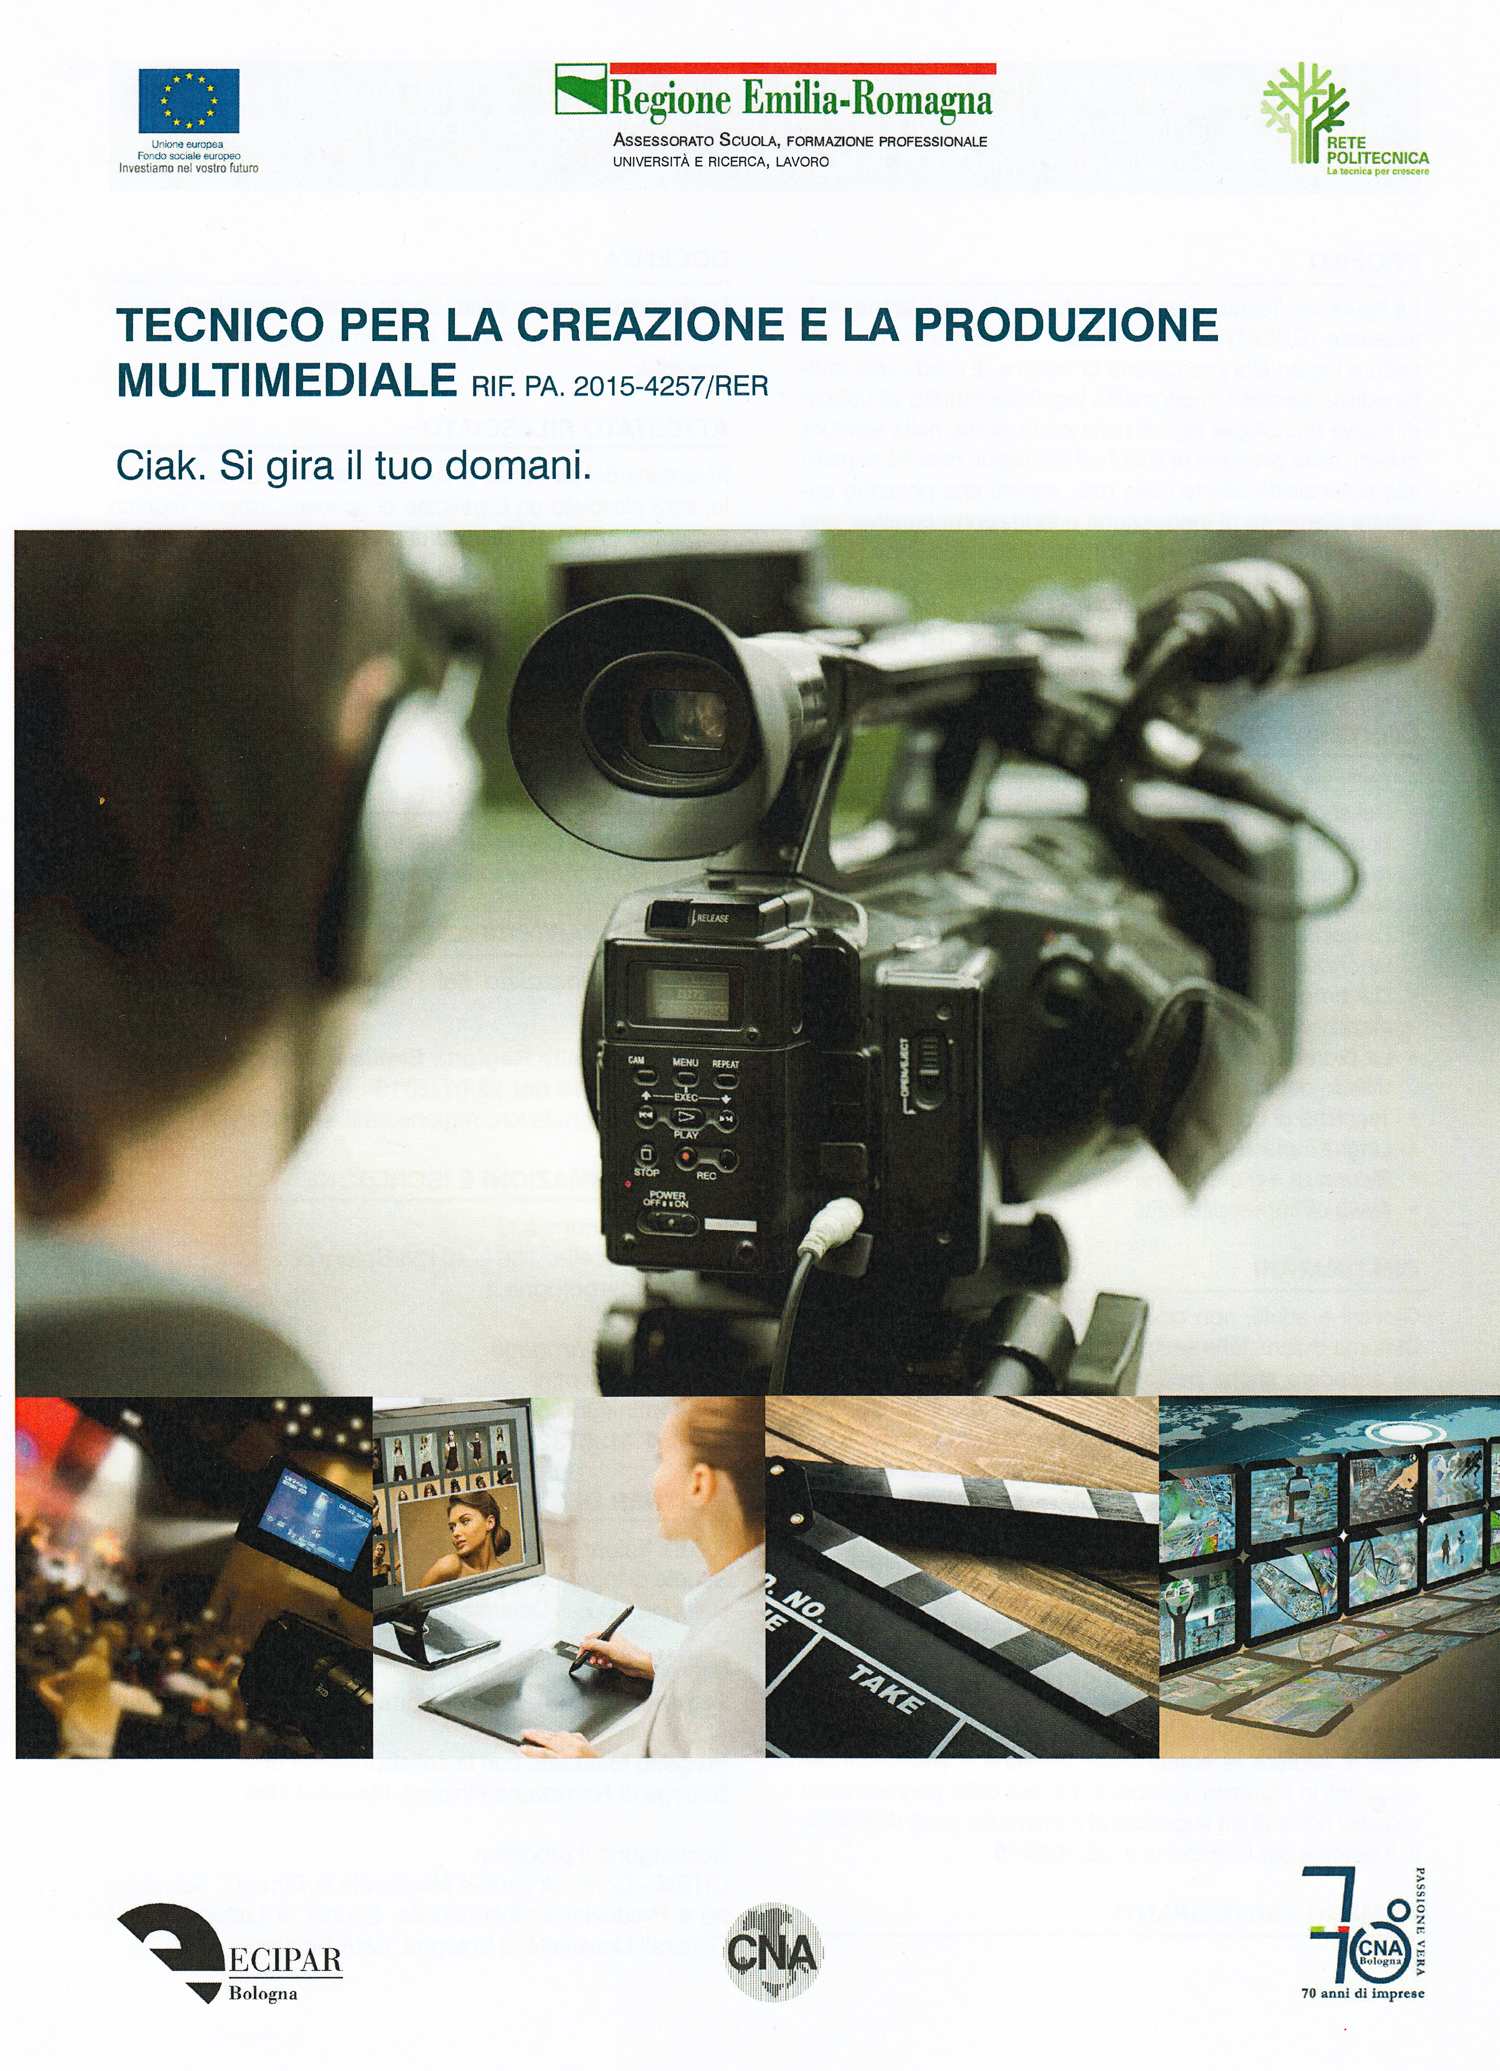 Project Management e Business Planning per i creativi del multimedia